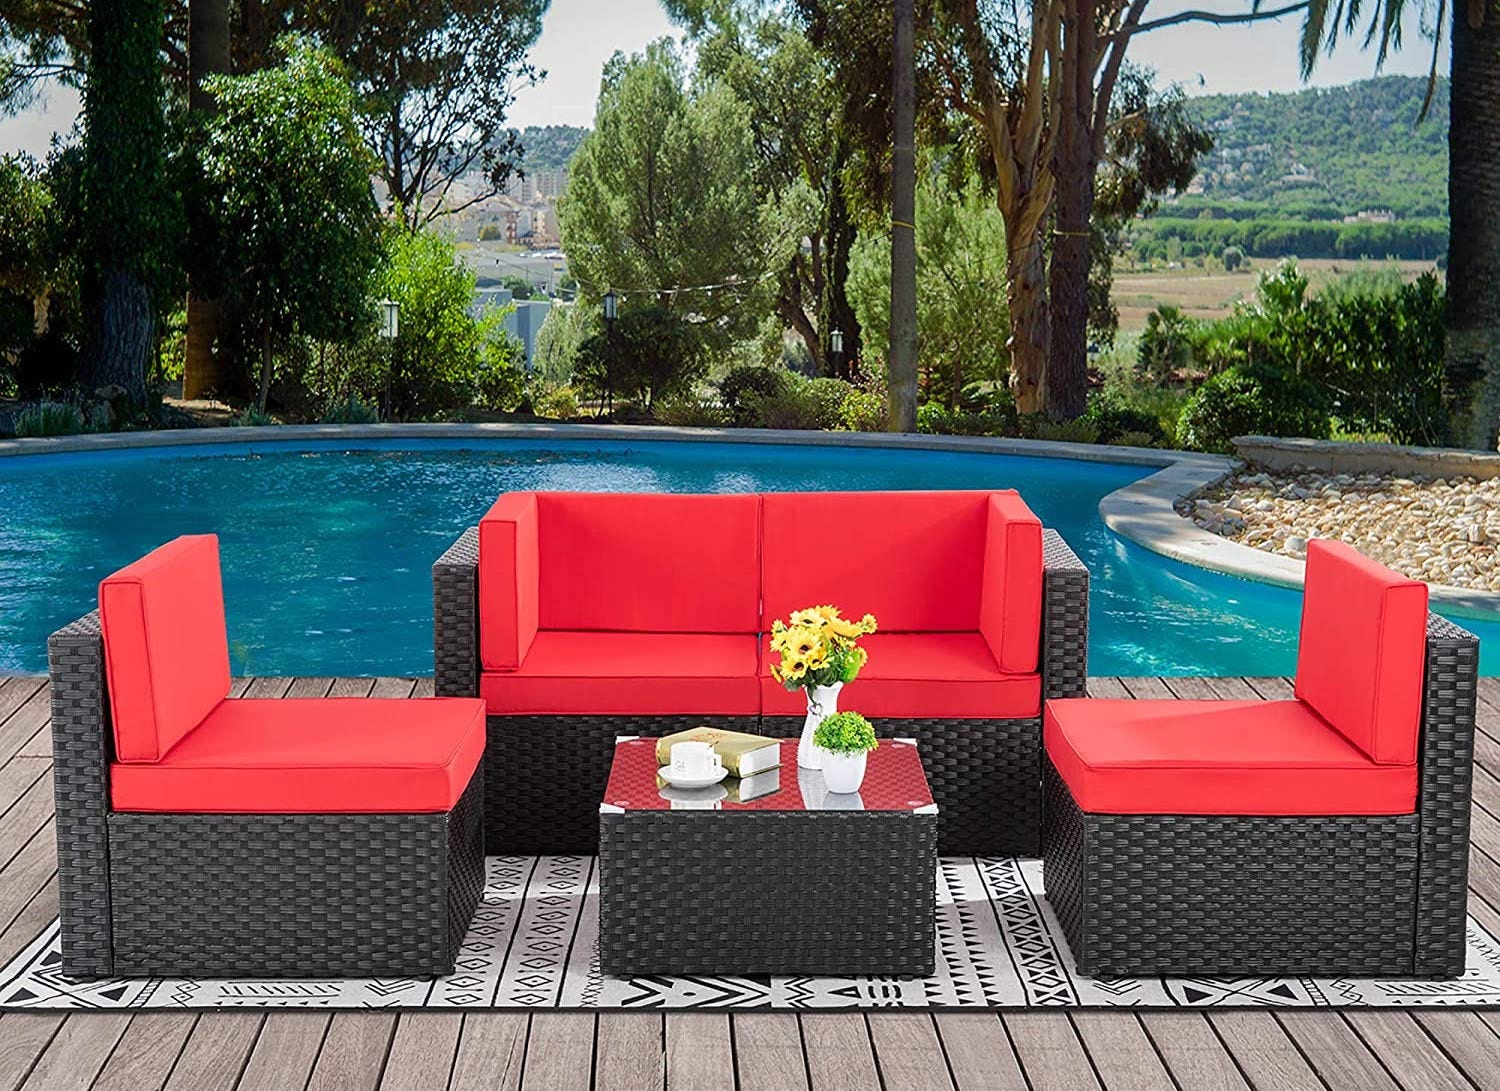 A red outdoor seating area with a sofa, two chairs, and a small table, all in front of a pool